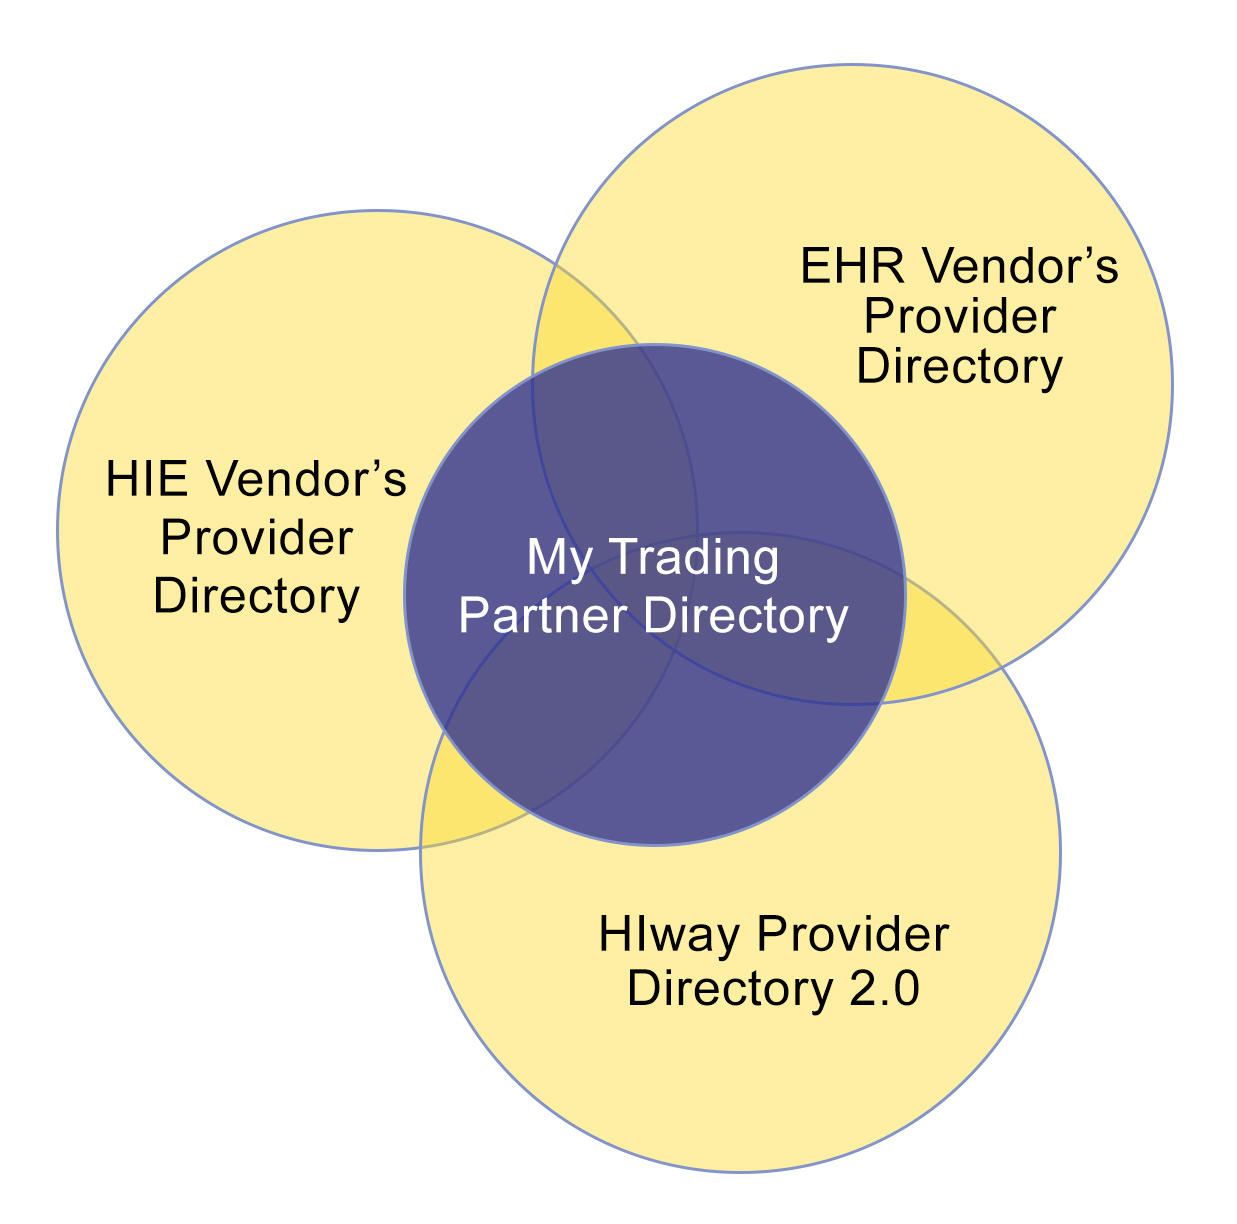 Venn diagram of a Trading Partner Directory